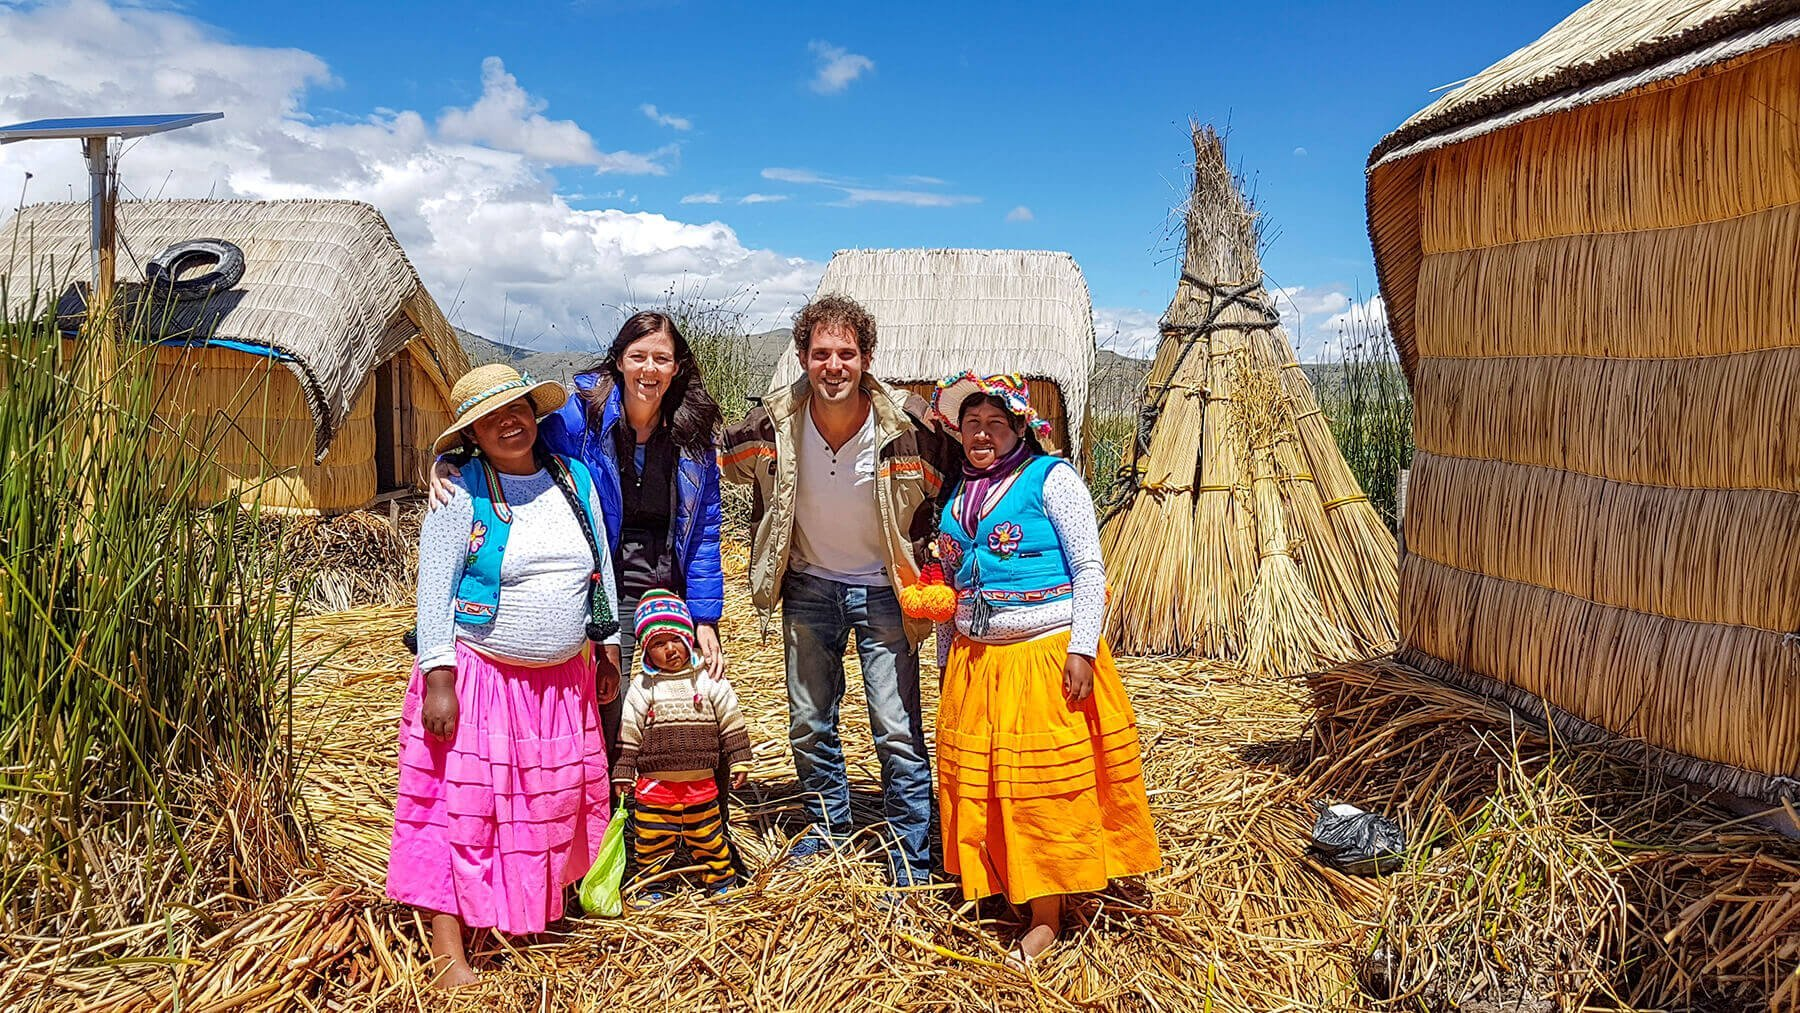 Uros islands in Lake Titicaca - Monique and Ydwer together with the locals on the photo